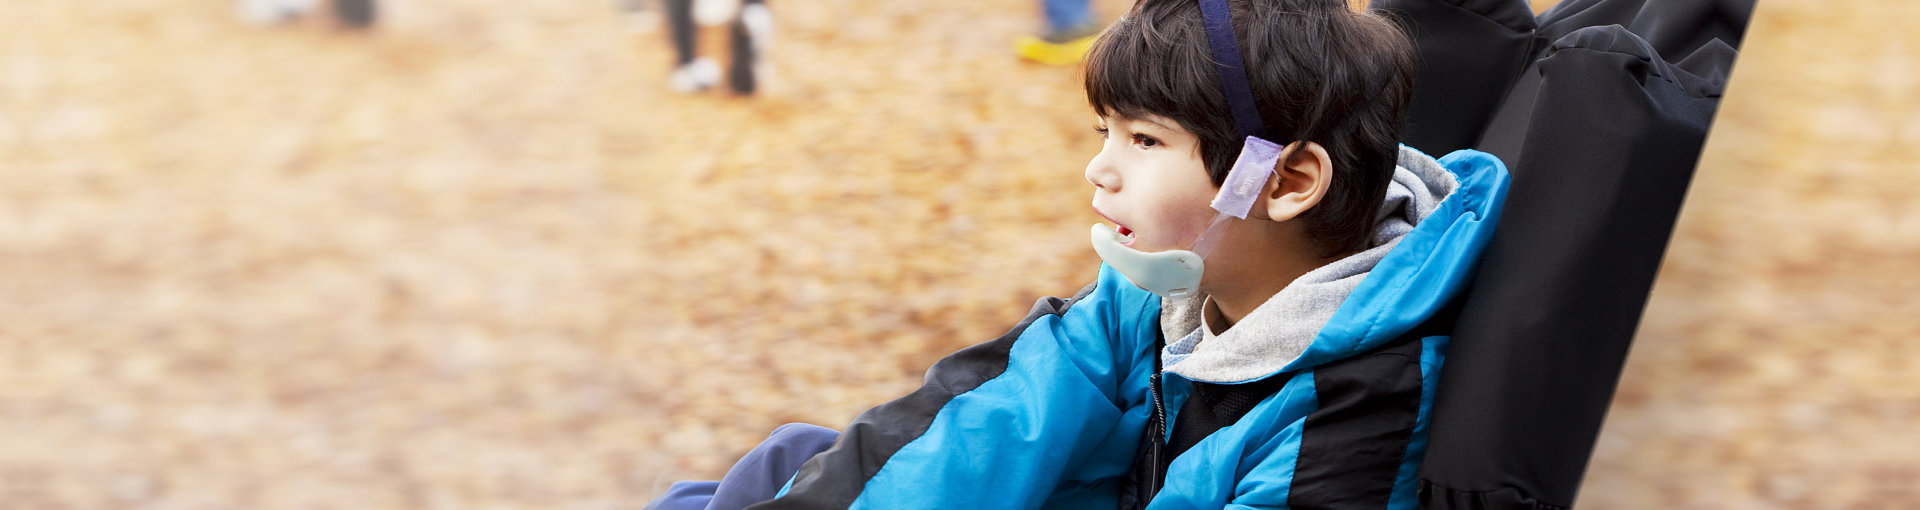 young boy watching other children play